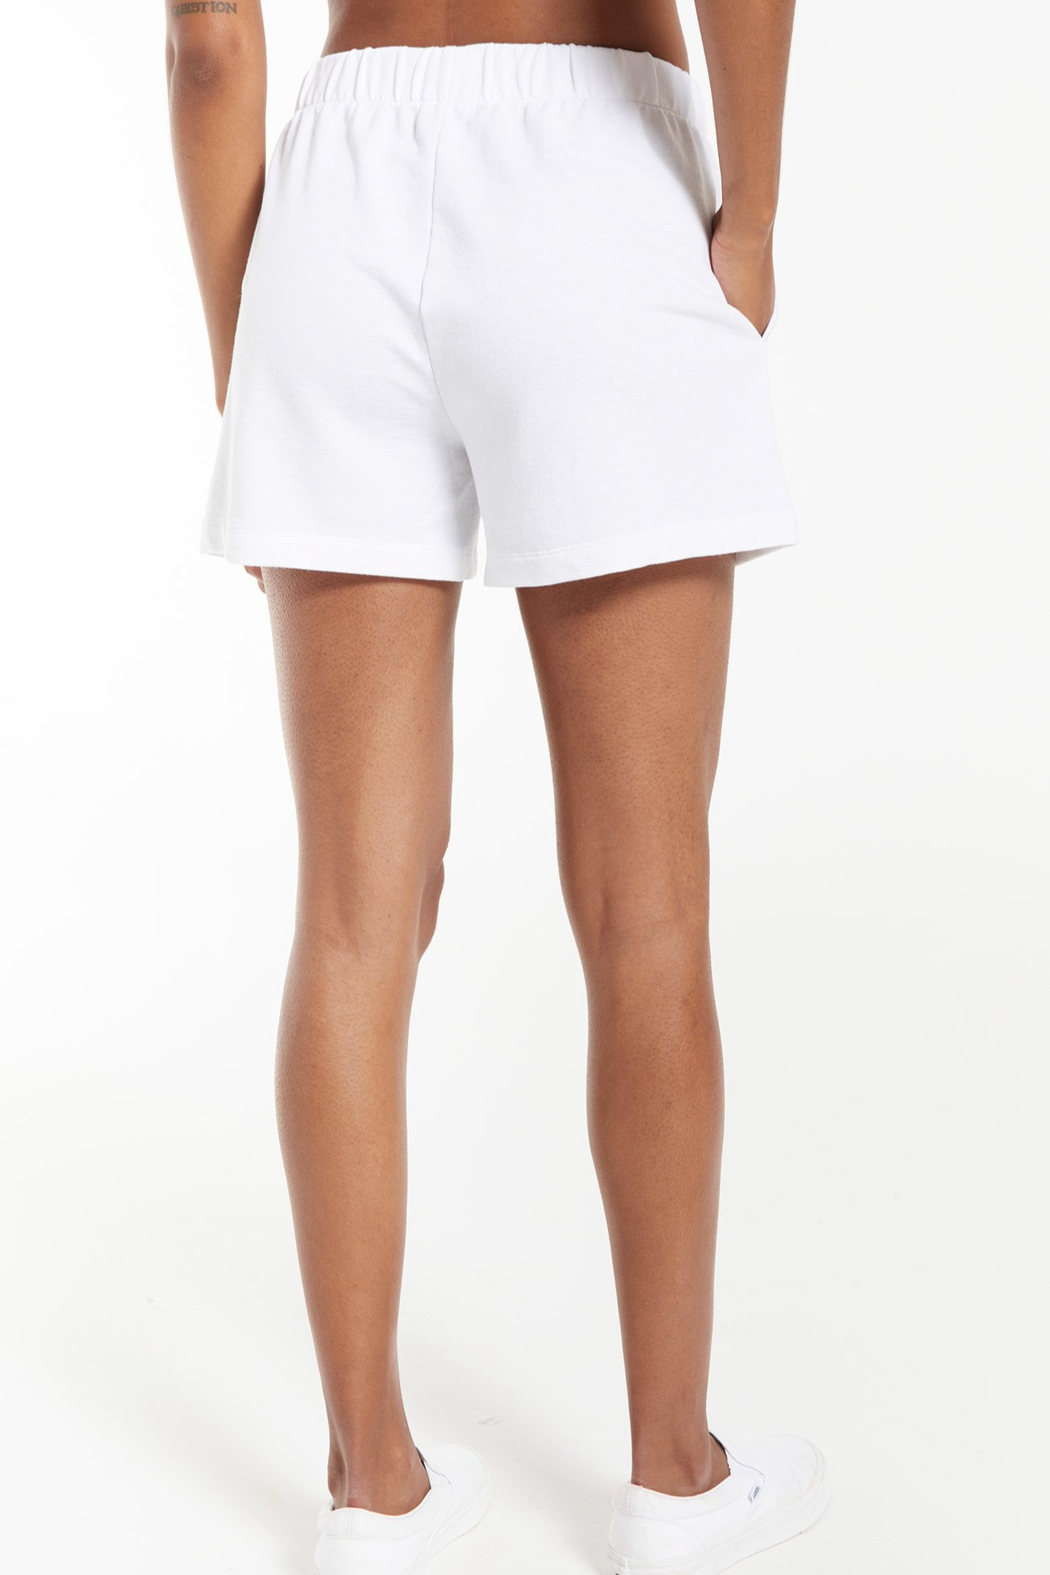 z supply Zuri Terry Short - Side Cropped Image